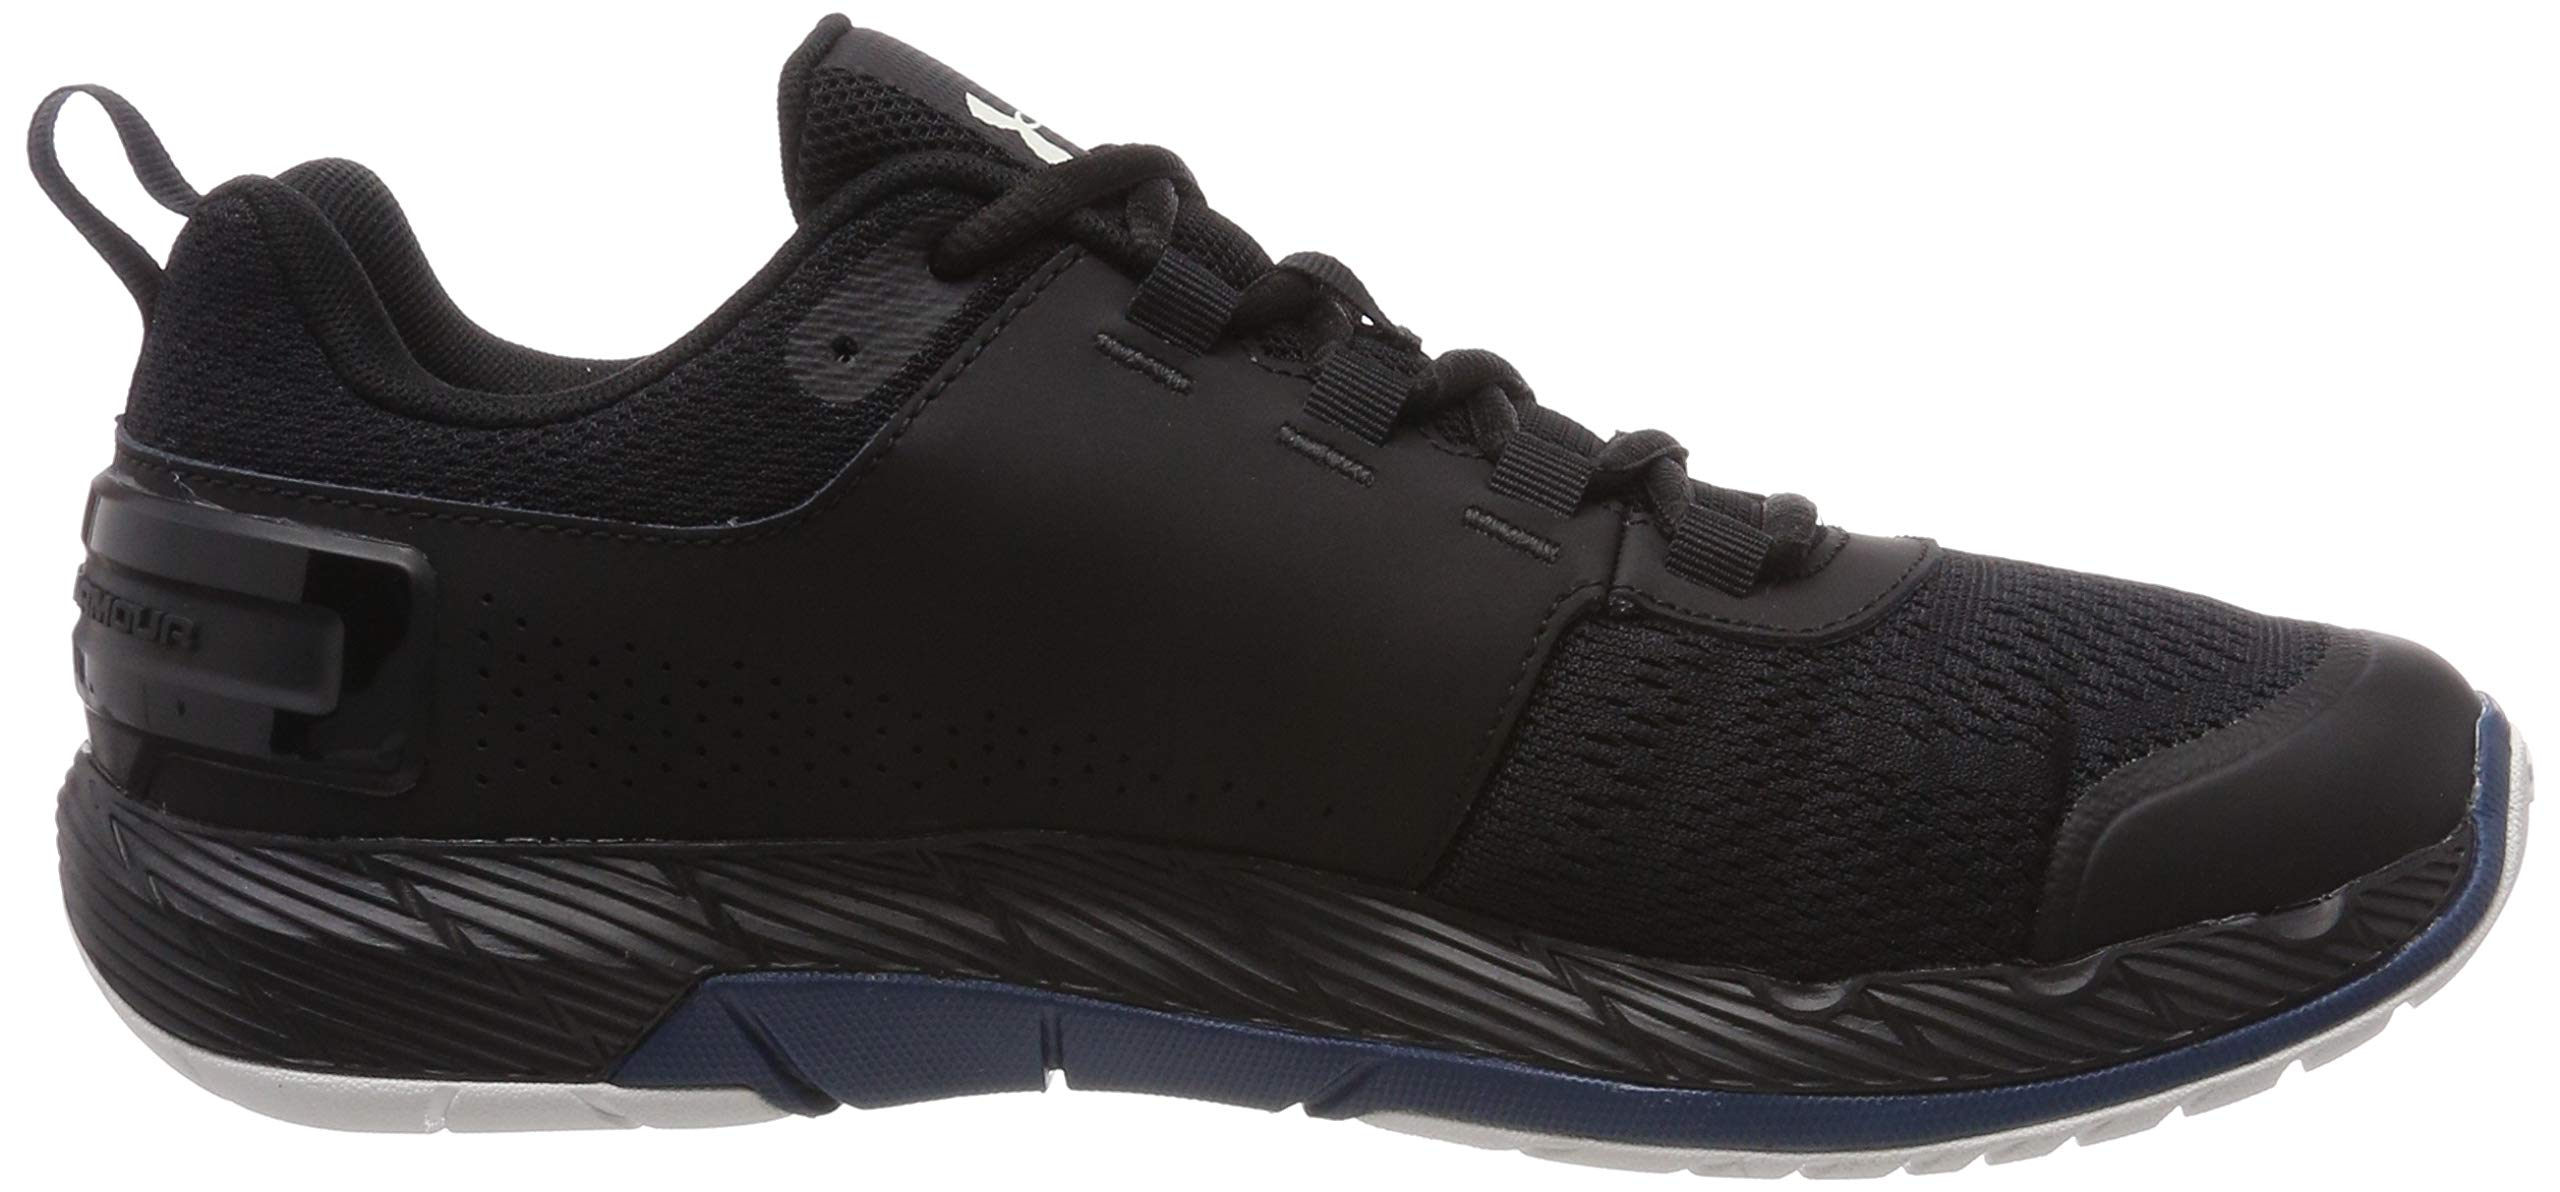 Under Armour Men's Commit TR EX Sneaker, Black (008)/Petrol Blue, 7.5 M US by Under Armour (Image #5)